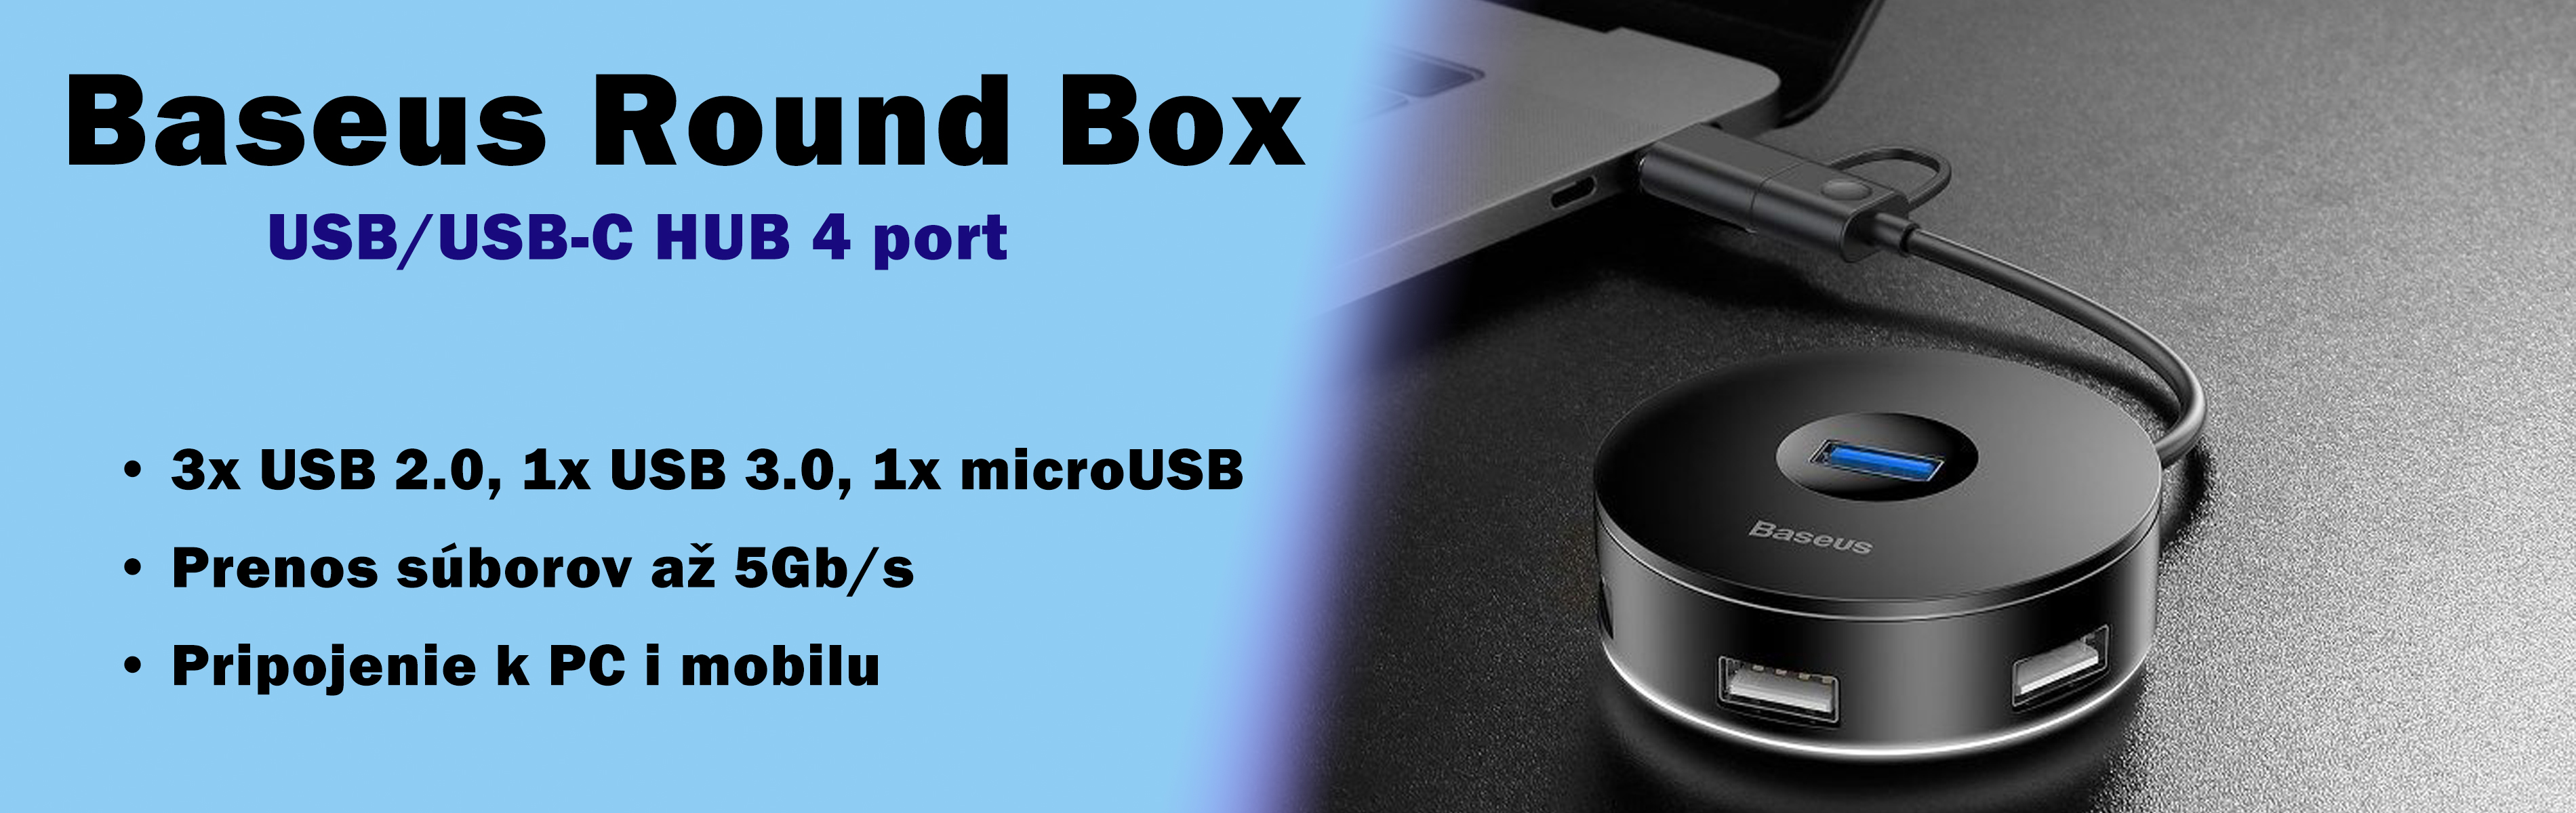 Adapter 4x USB Round Box - Baseus